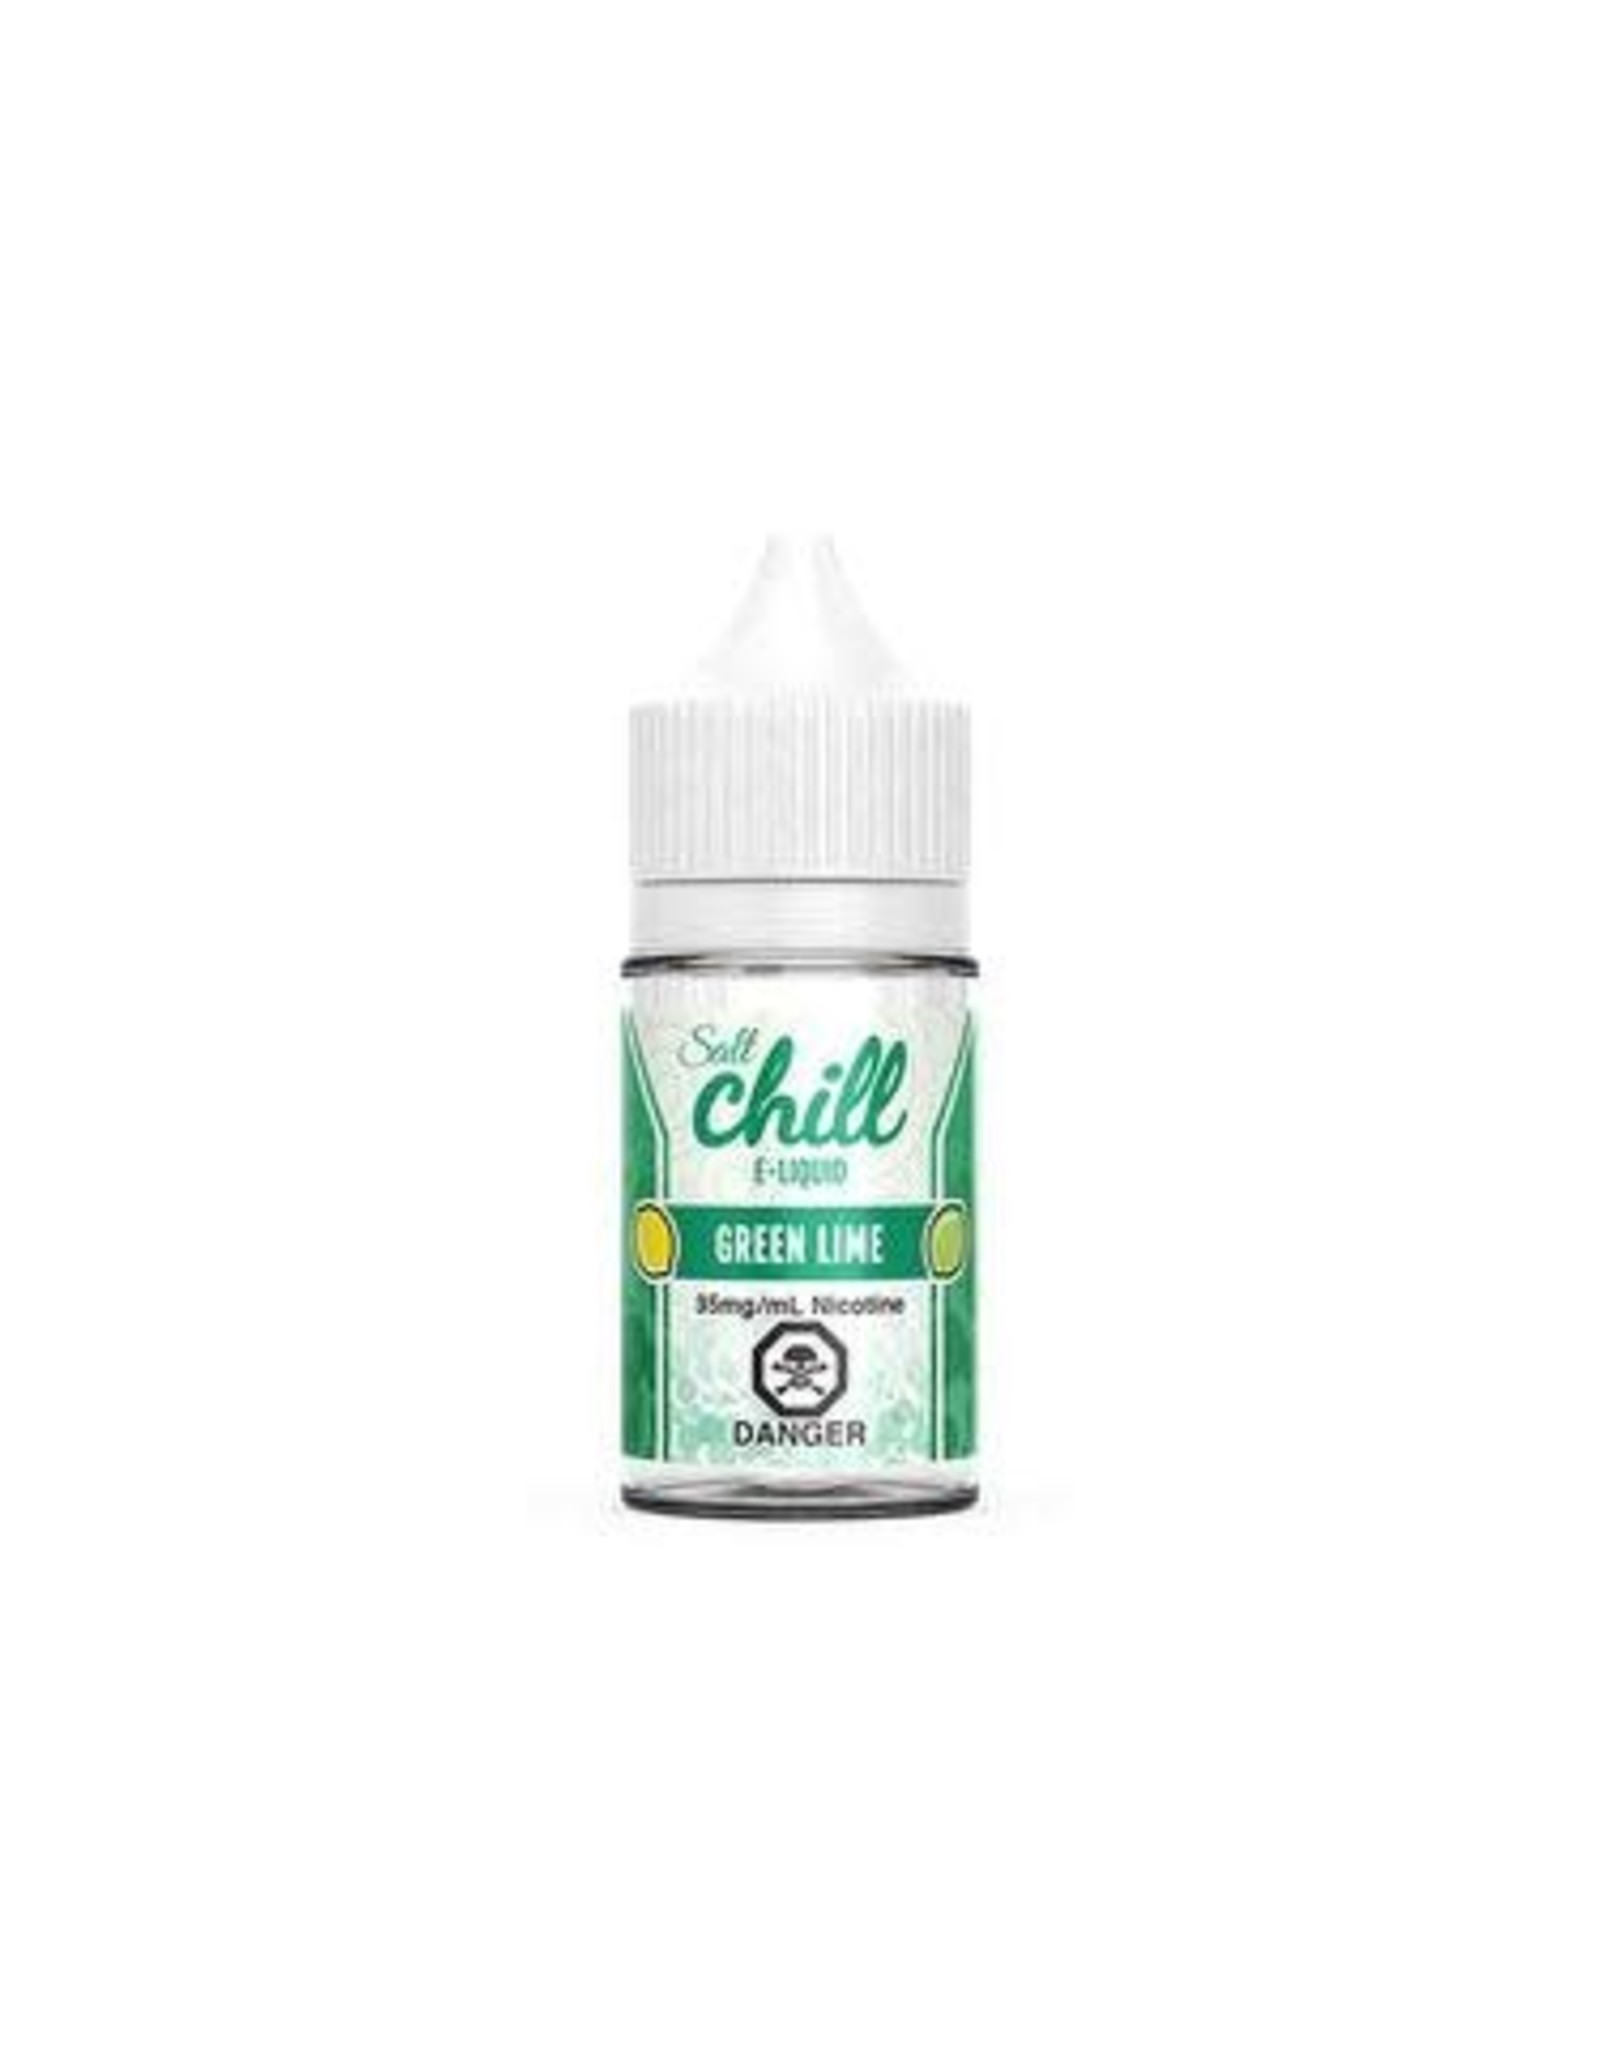 CHILL SALT GREEN LIME (SALT) BY CHILL E-LIQUIDS(30ml)